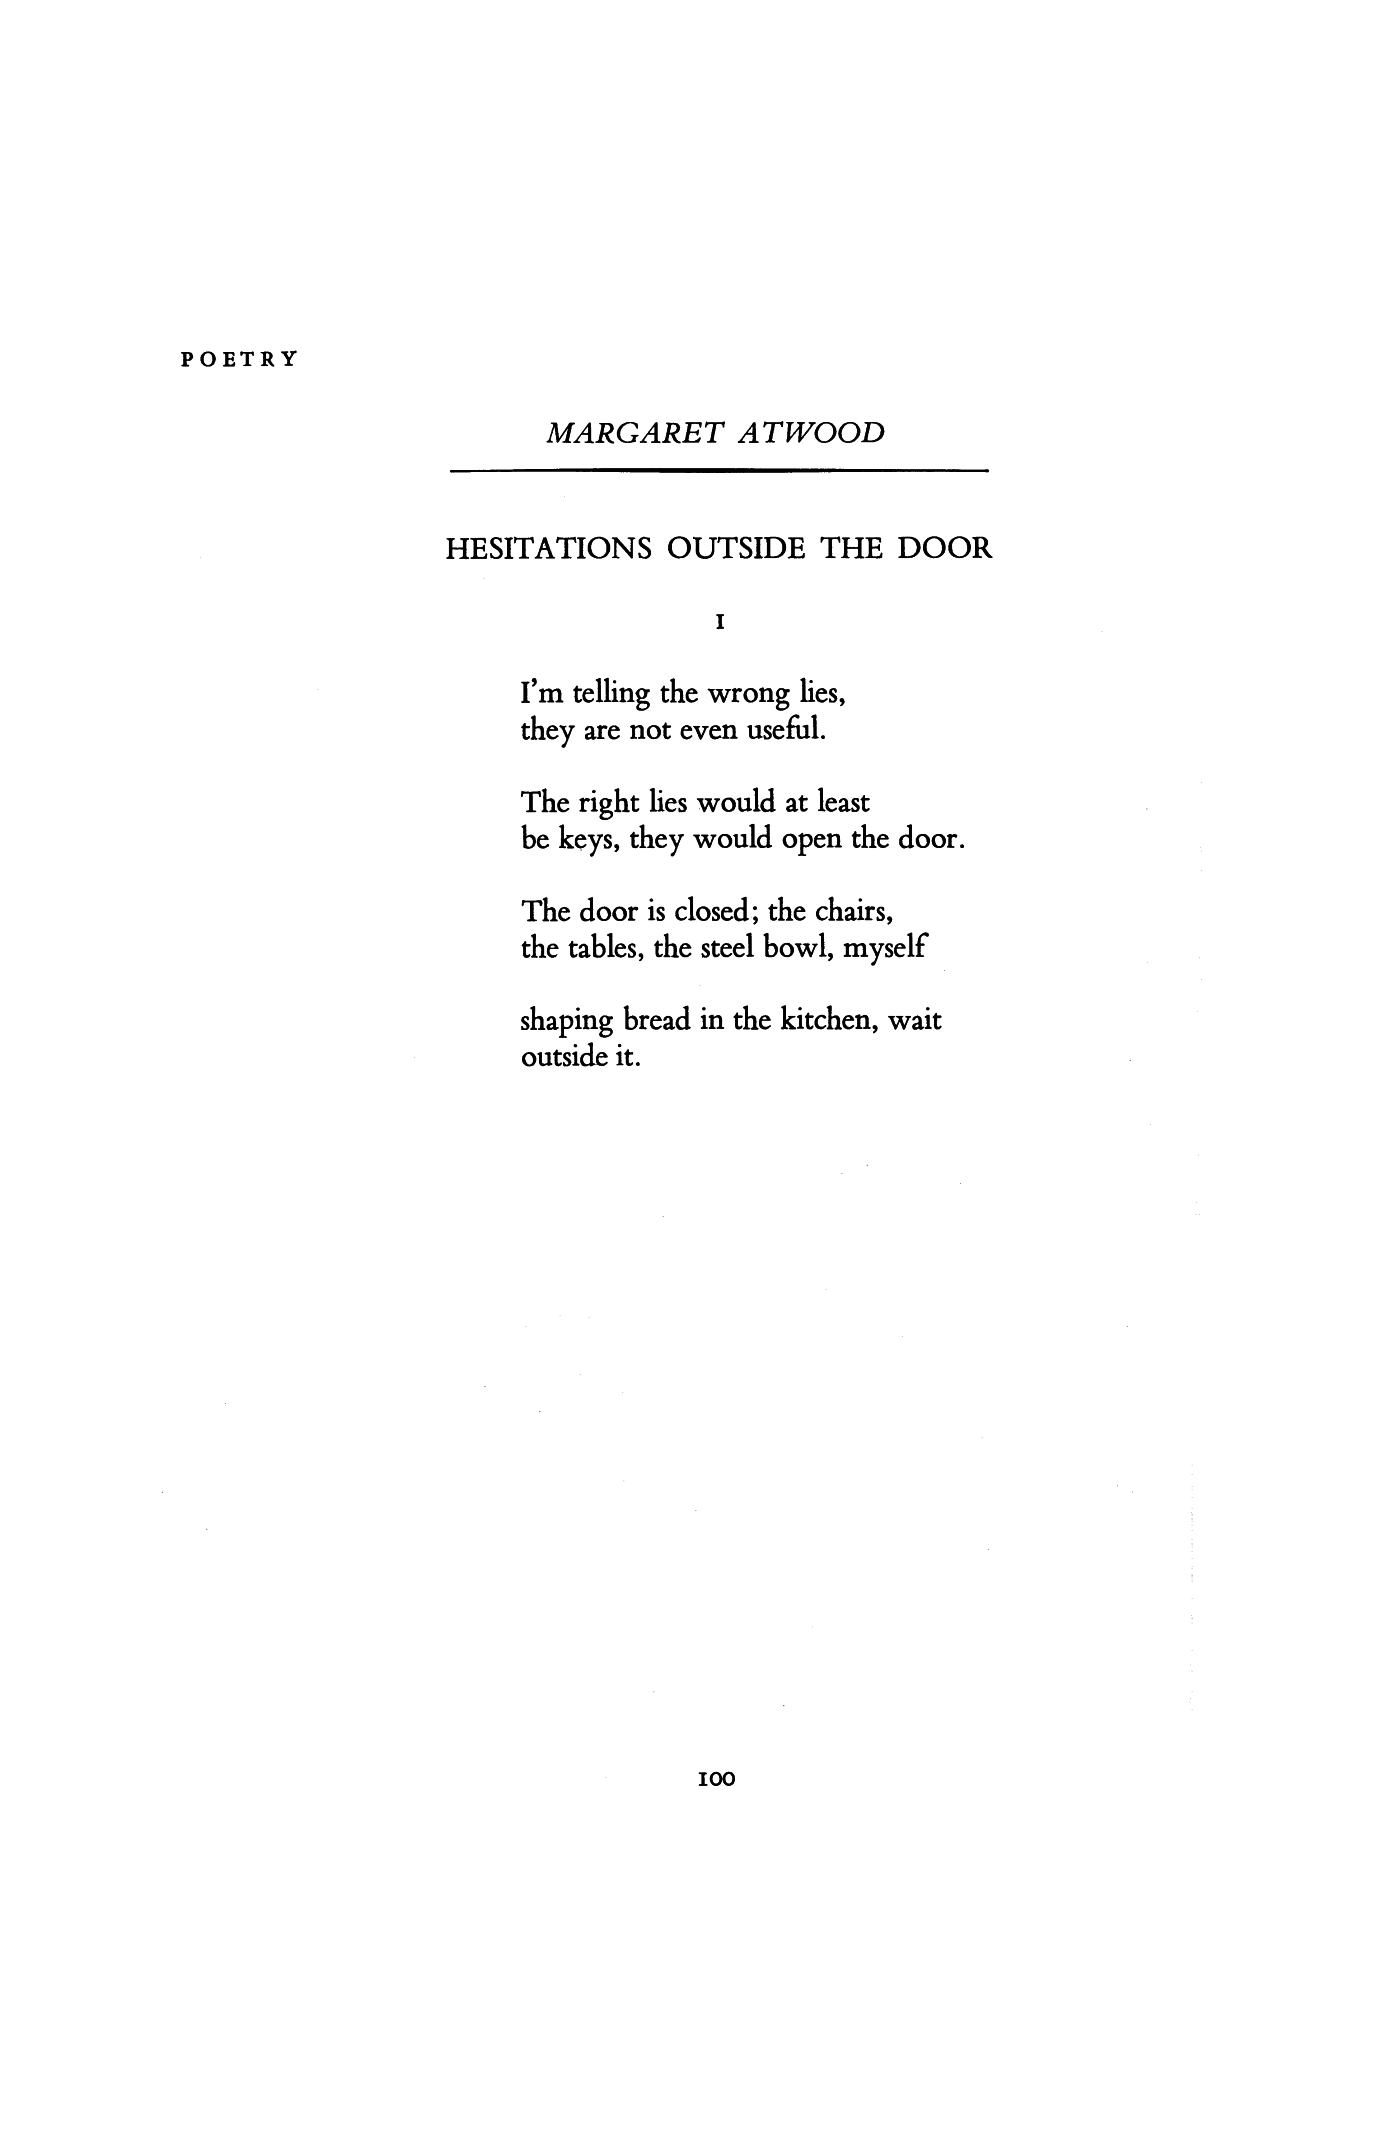 Hesitations Outside the Door by Margaret Atwood | ( You refuse to own ) by Margaret Atwood | Poetry Magazine  sc 1 st  Pinterest & Hesitations Outside the Door by Margaret Atwood | (